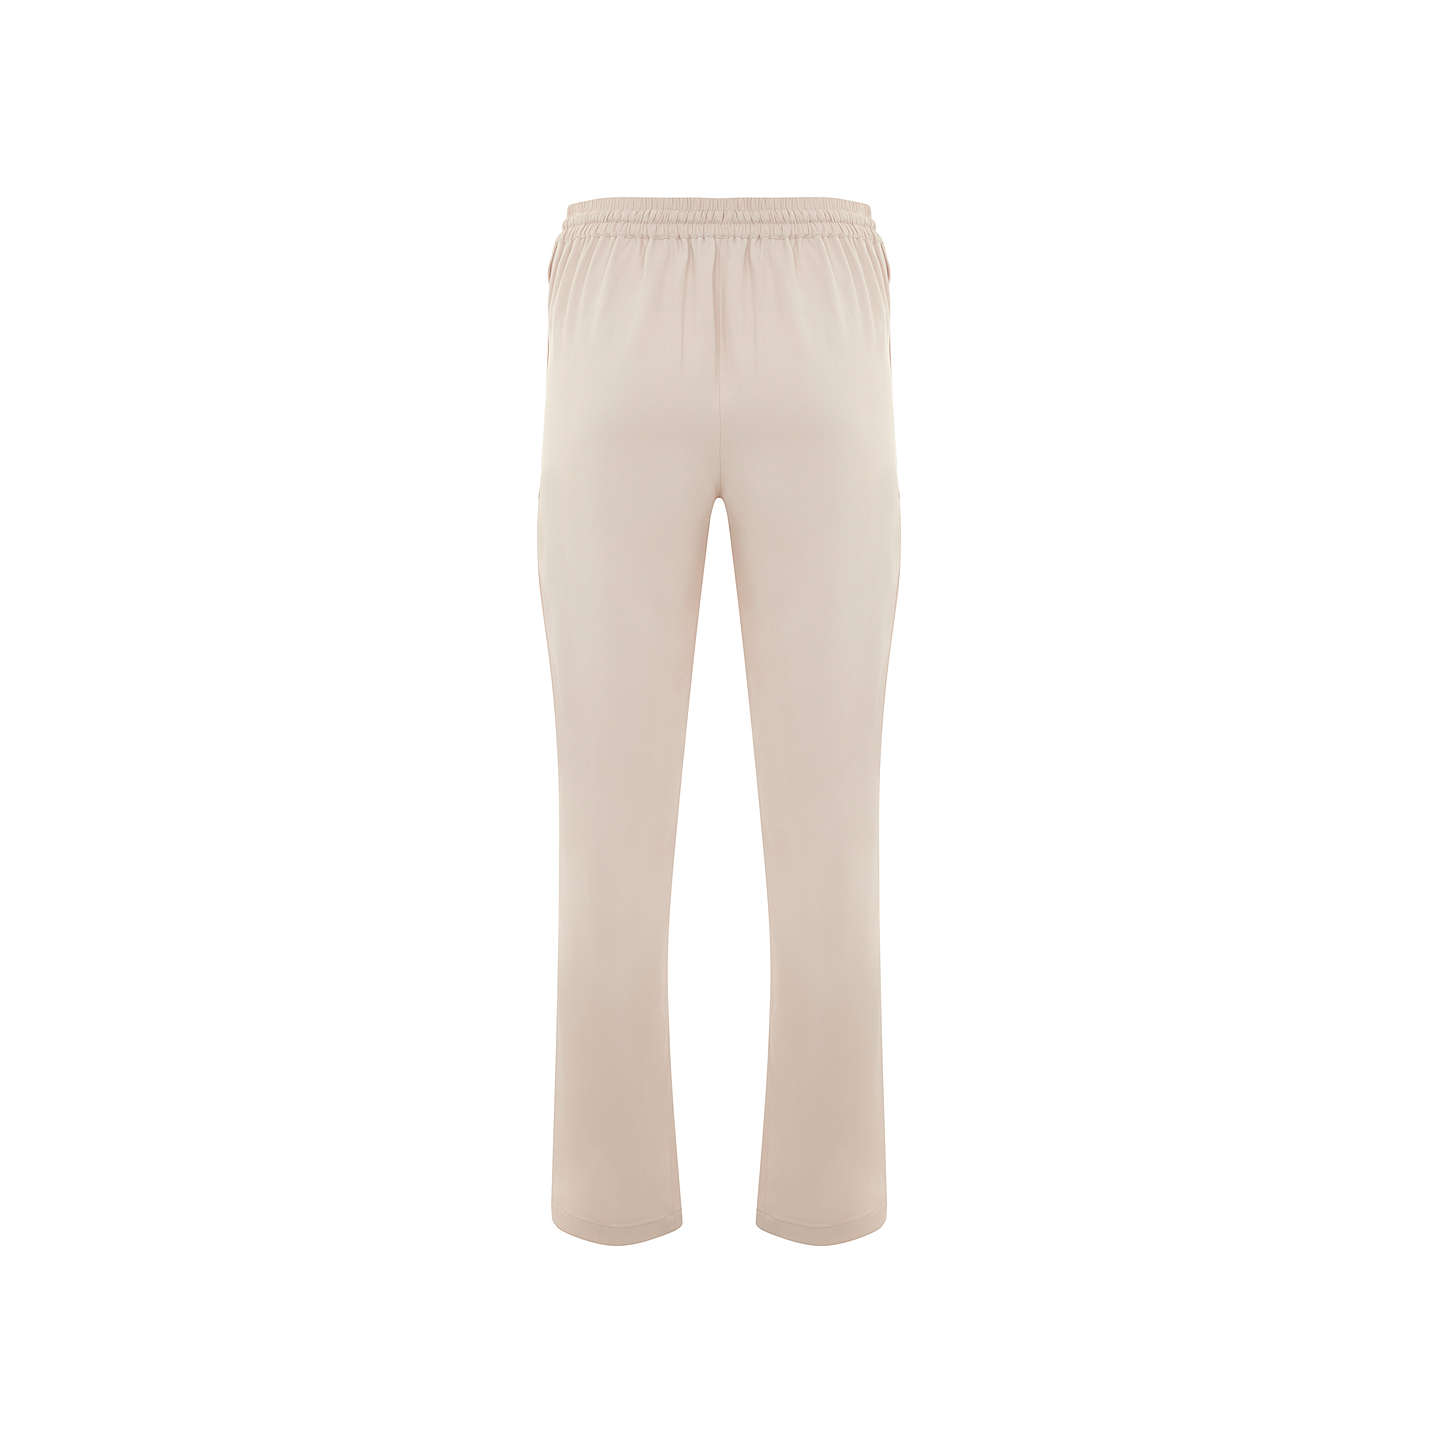 BuyMint Velvet Side Stripe Sports Trousers, Light Pink, 6 Online at johnlewis.com